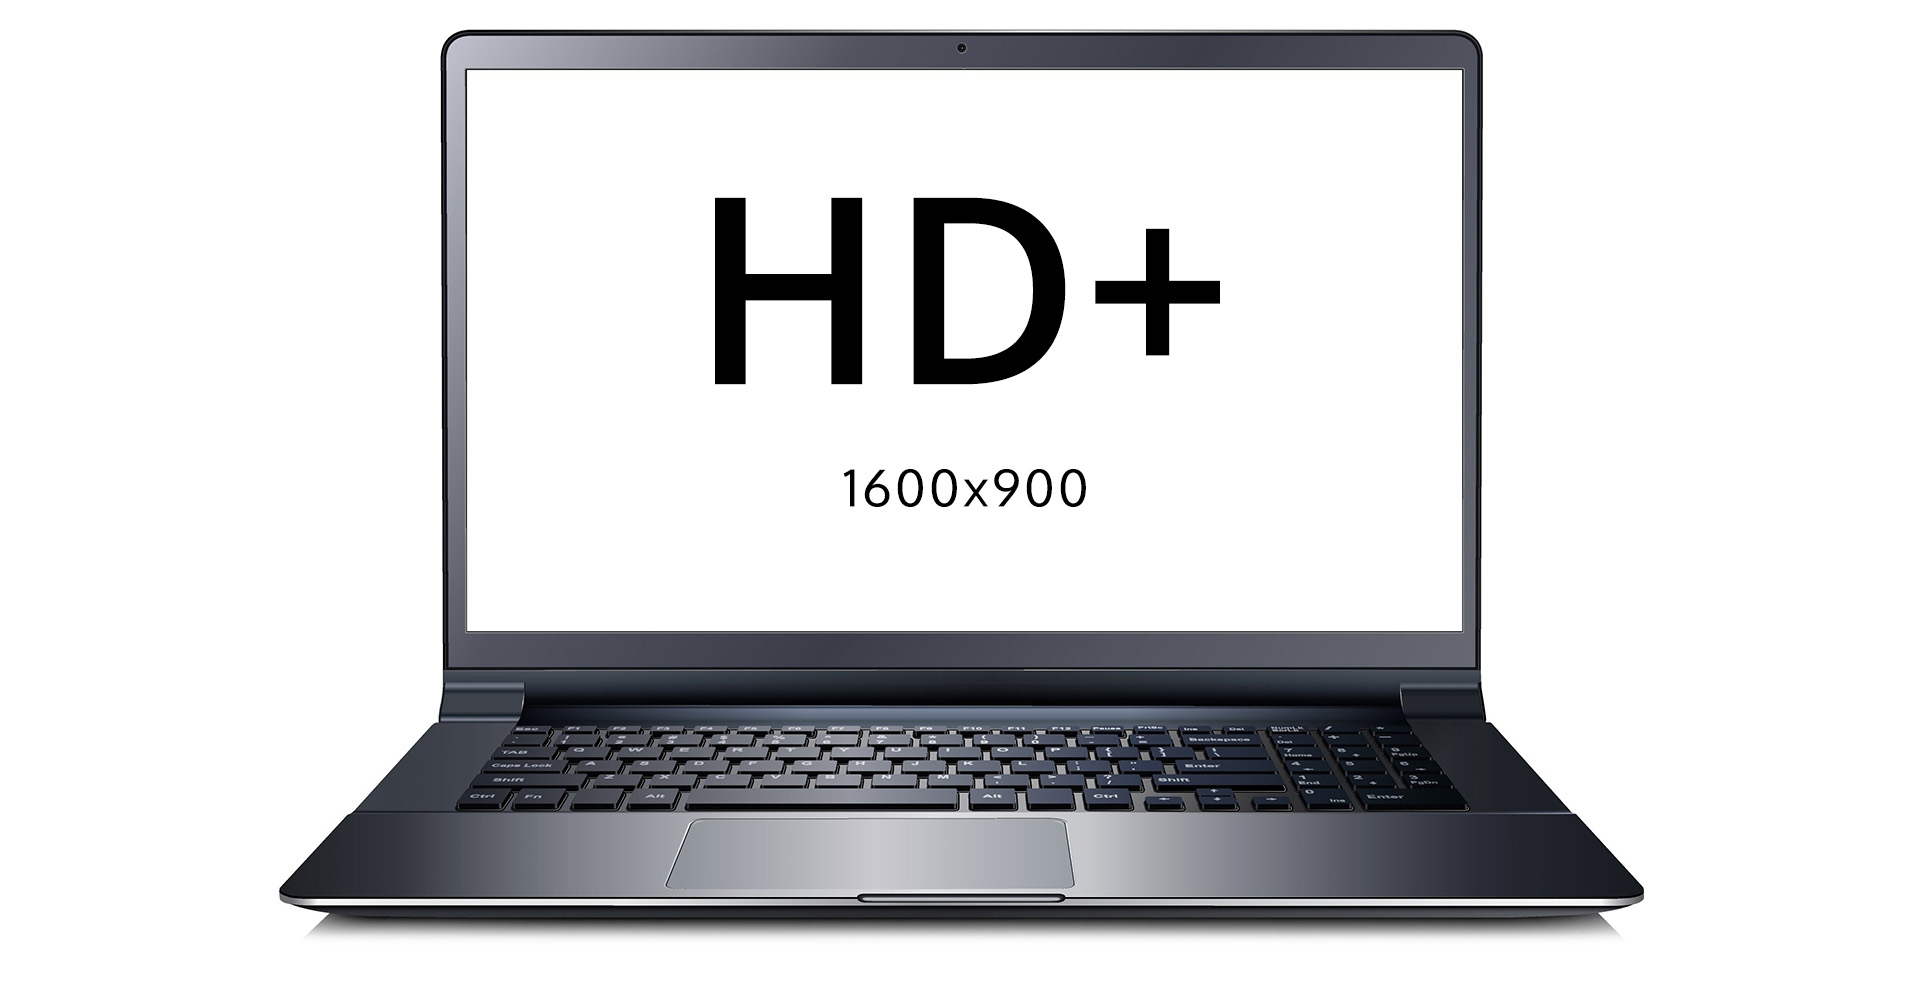 Acer Aspire HD N4020/4GB/480GB SSD/DVD-RW/Win 10                             HD+ 1600x900 resolutsioon